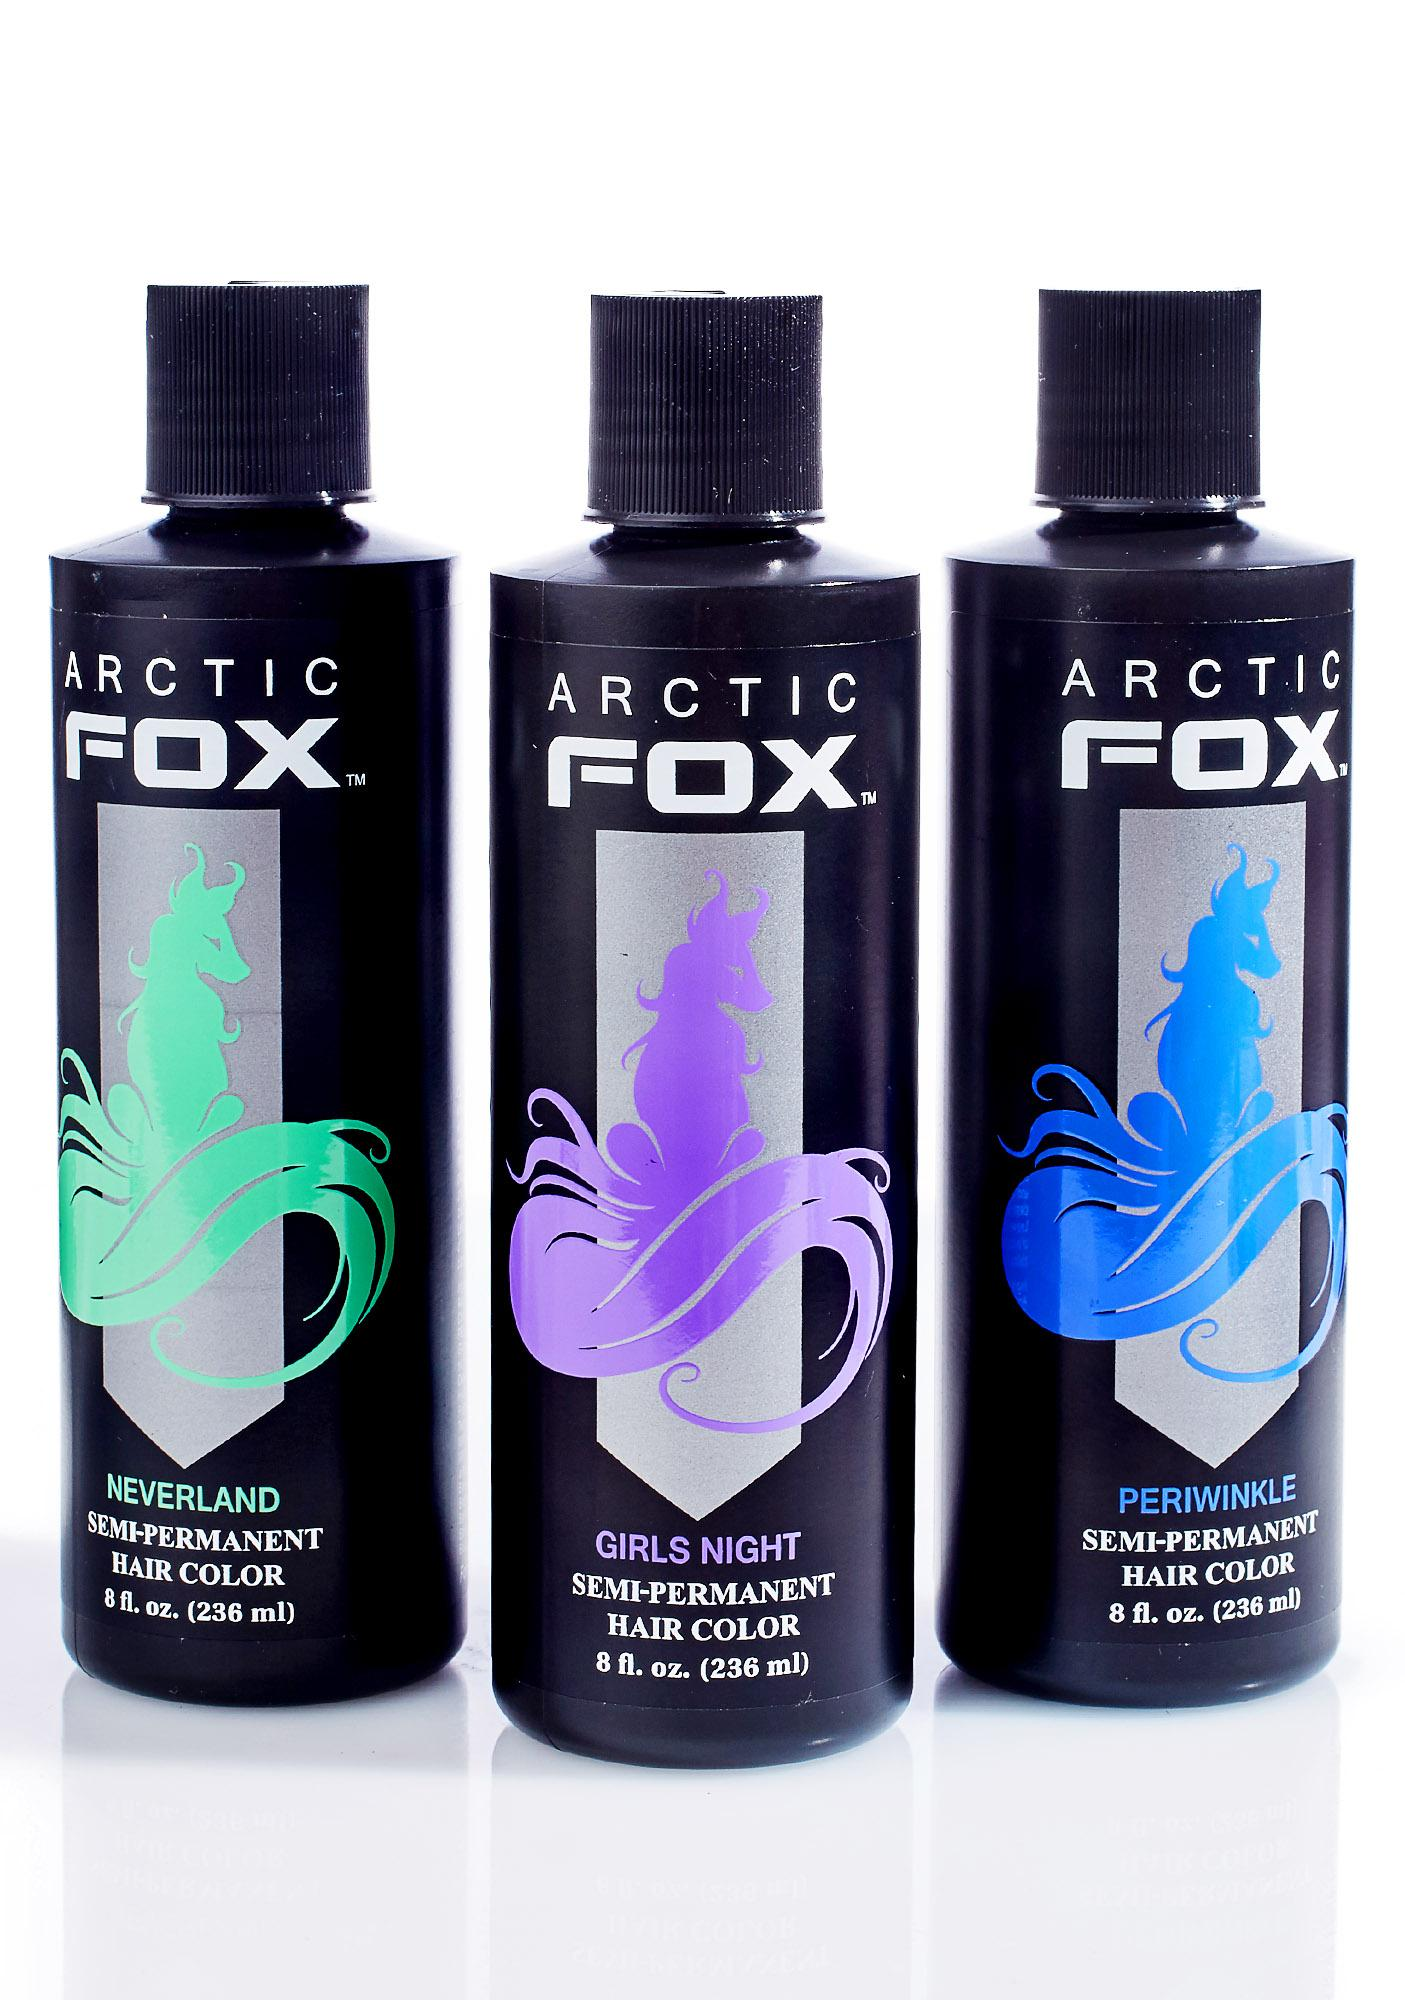 Arctic Fox Periwinkle Hair Dye